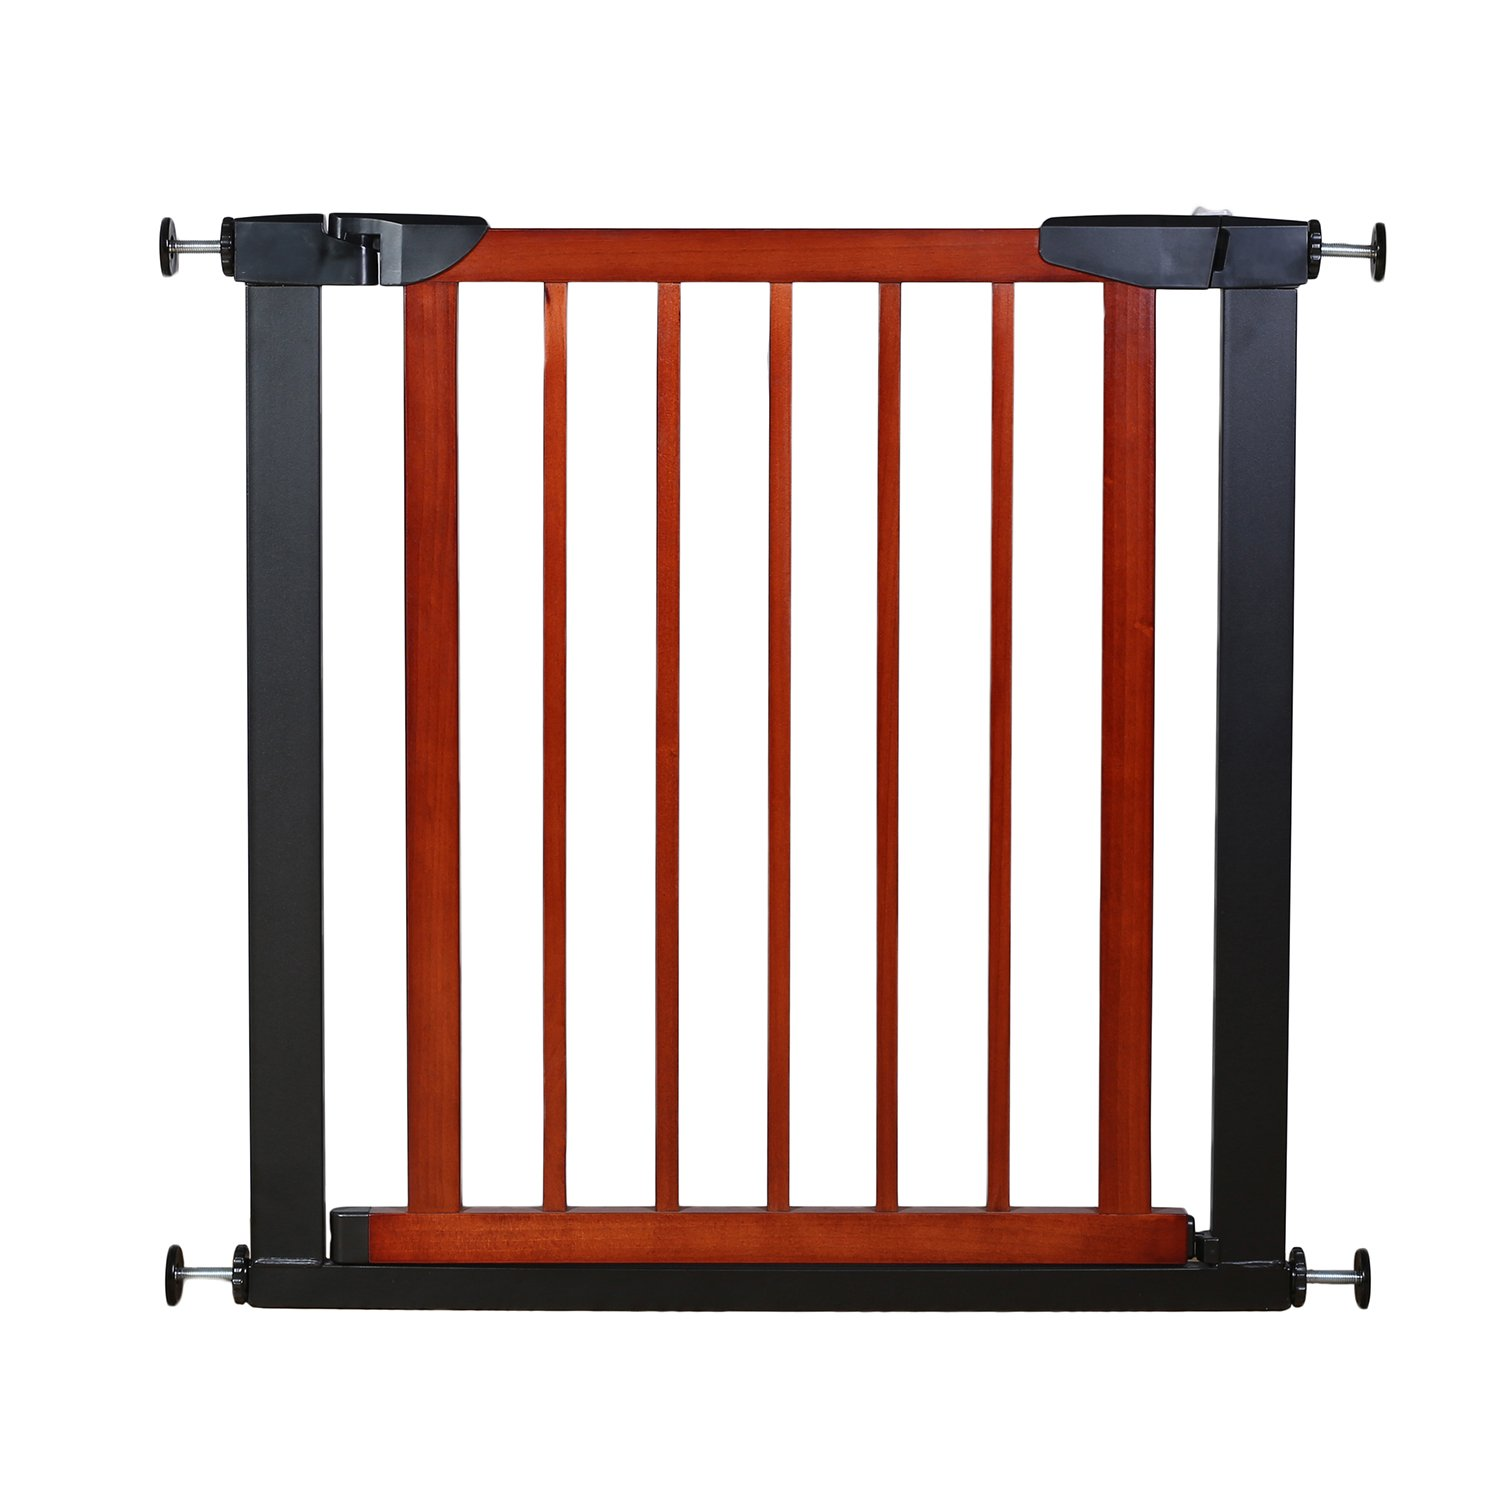 Fairy Baby Pet Baby Gate Narrow Extra Wide for Stairs Metal and Wood Pressure Mounted Safety Walk Through Gate,Fit Spaces Between 29.53 -32.28 3-7 Days Delivered